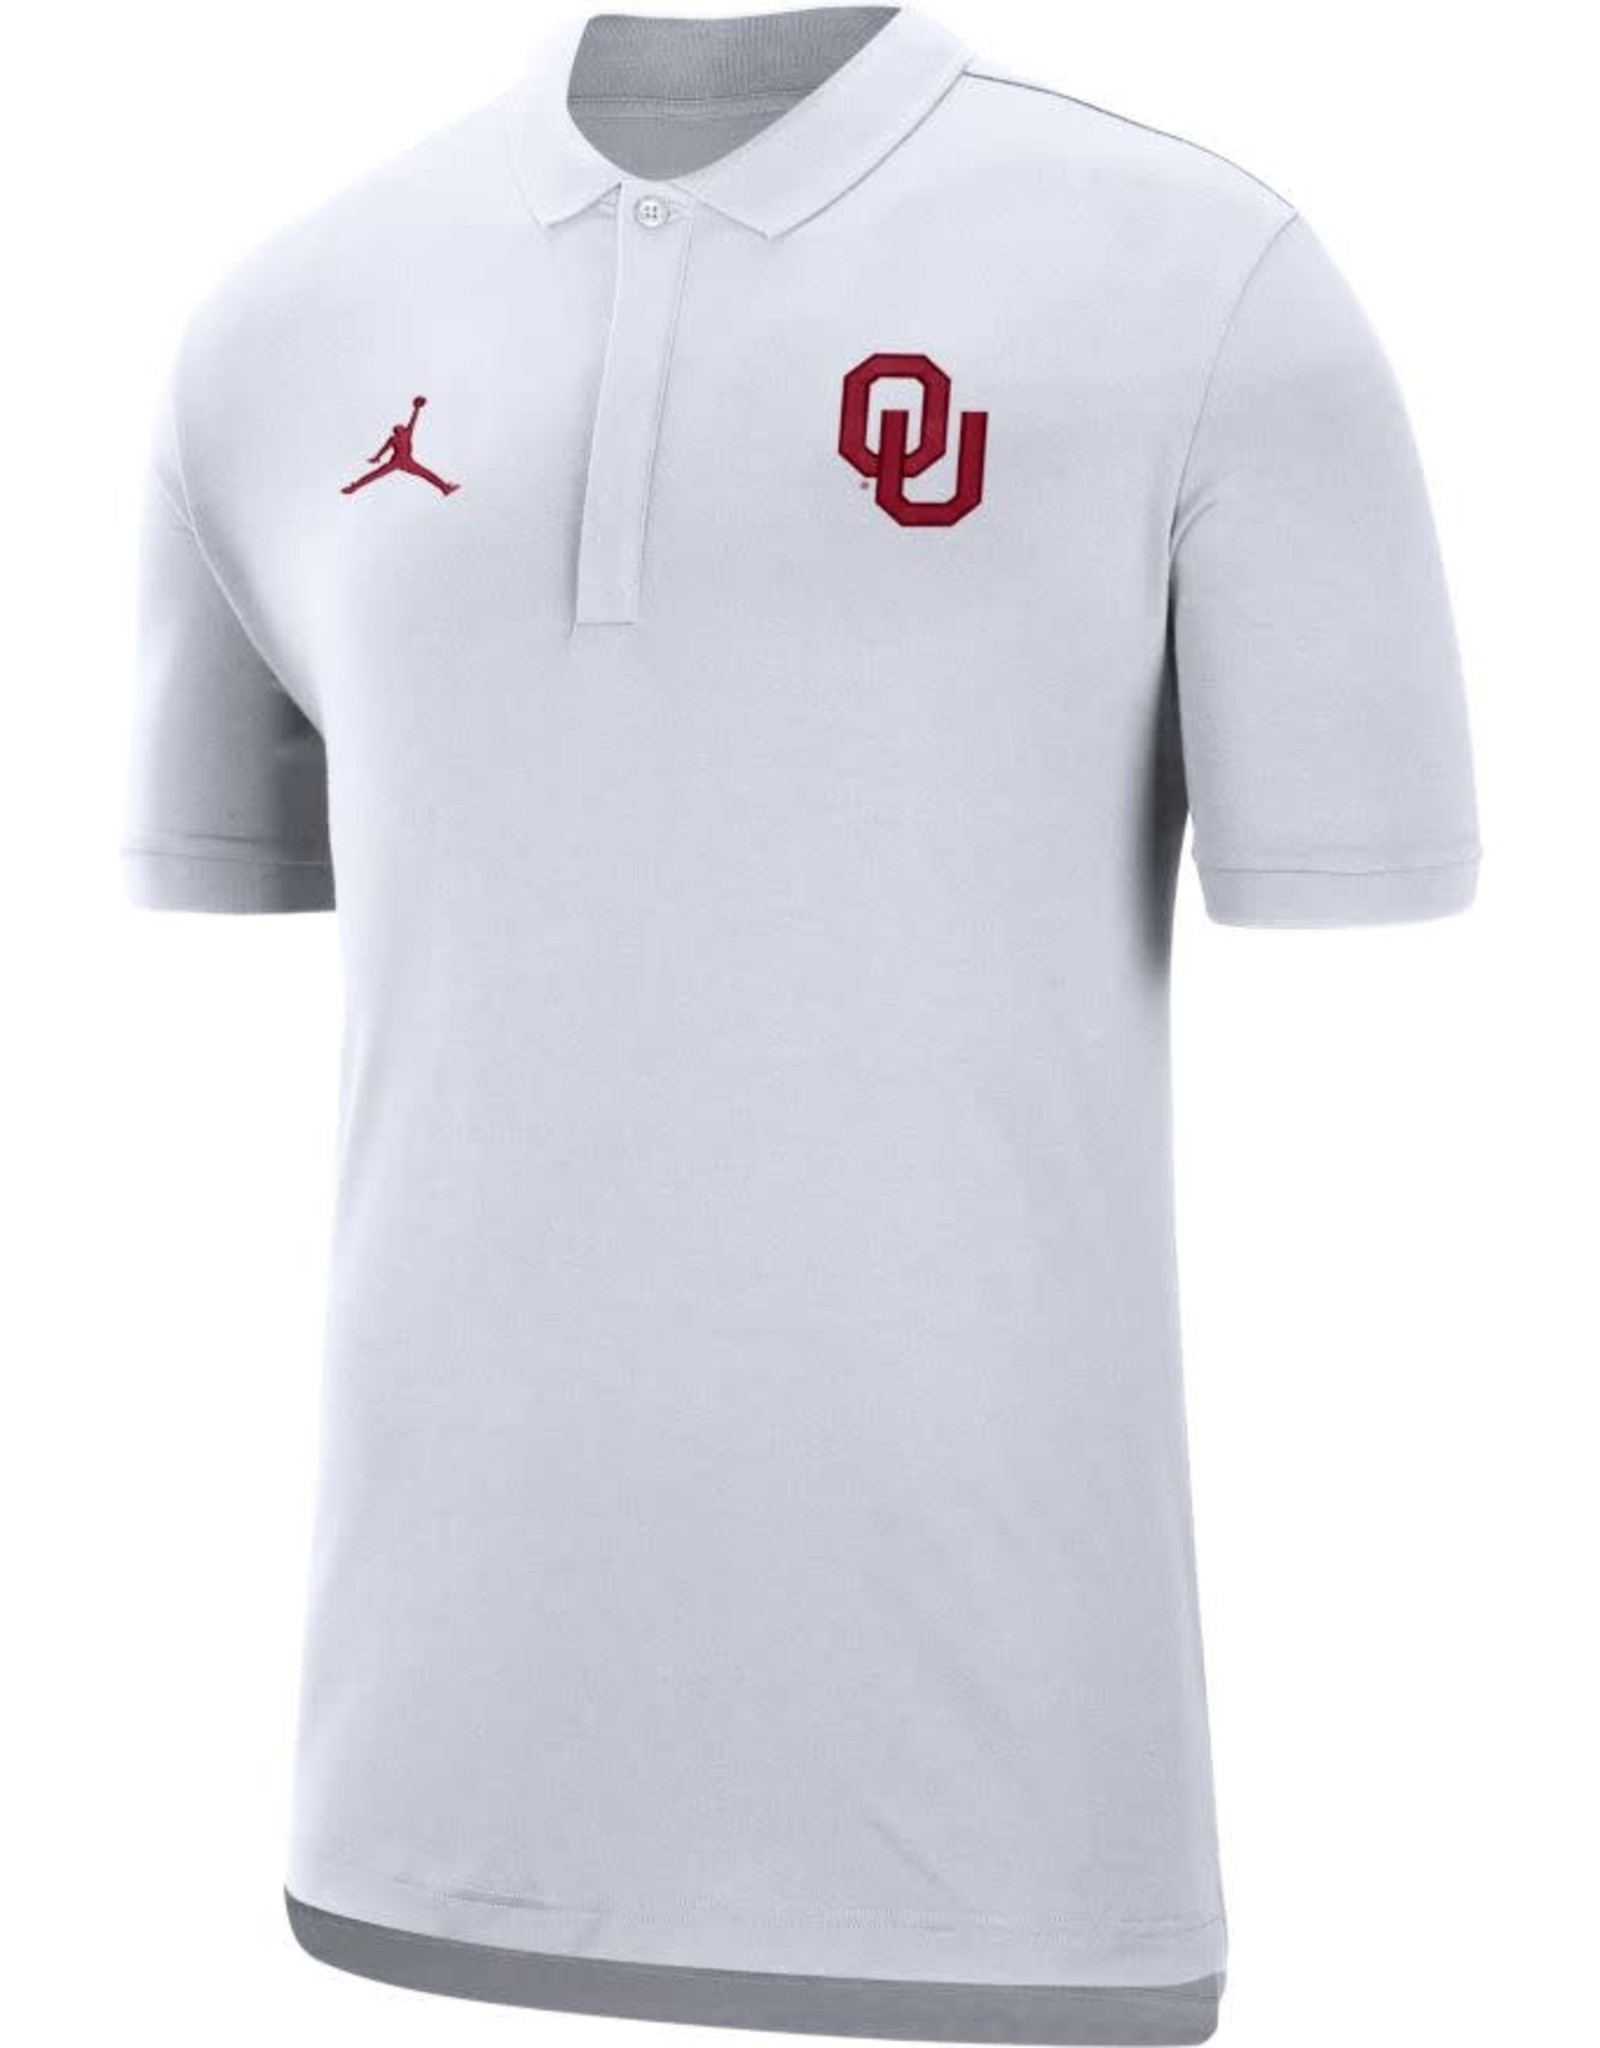 Jordan Men's Jordan Brand 2019 Coach's Polo